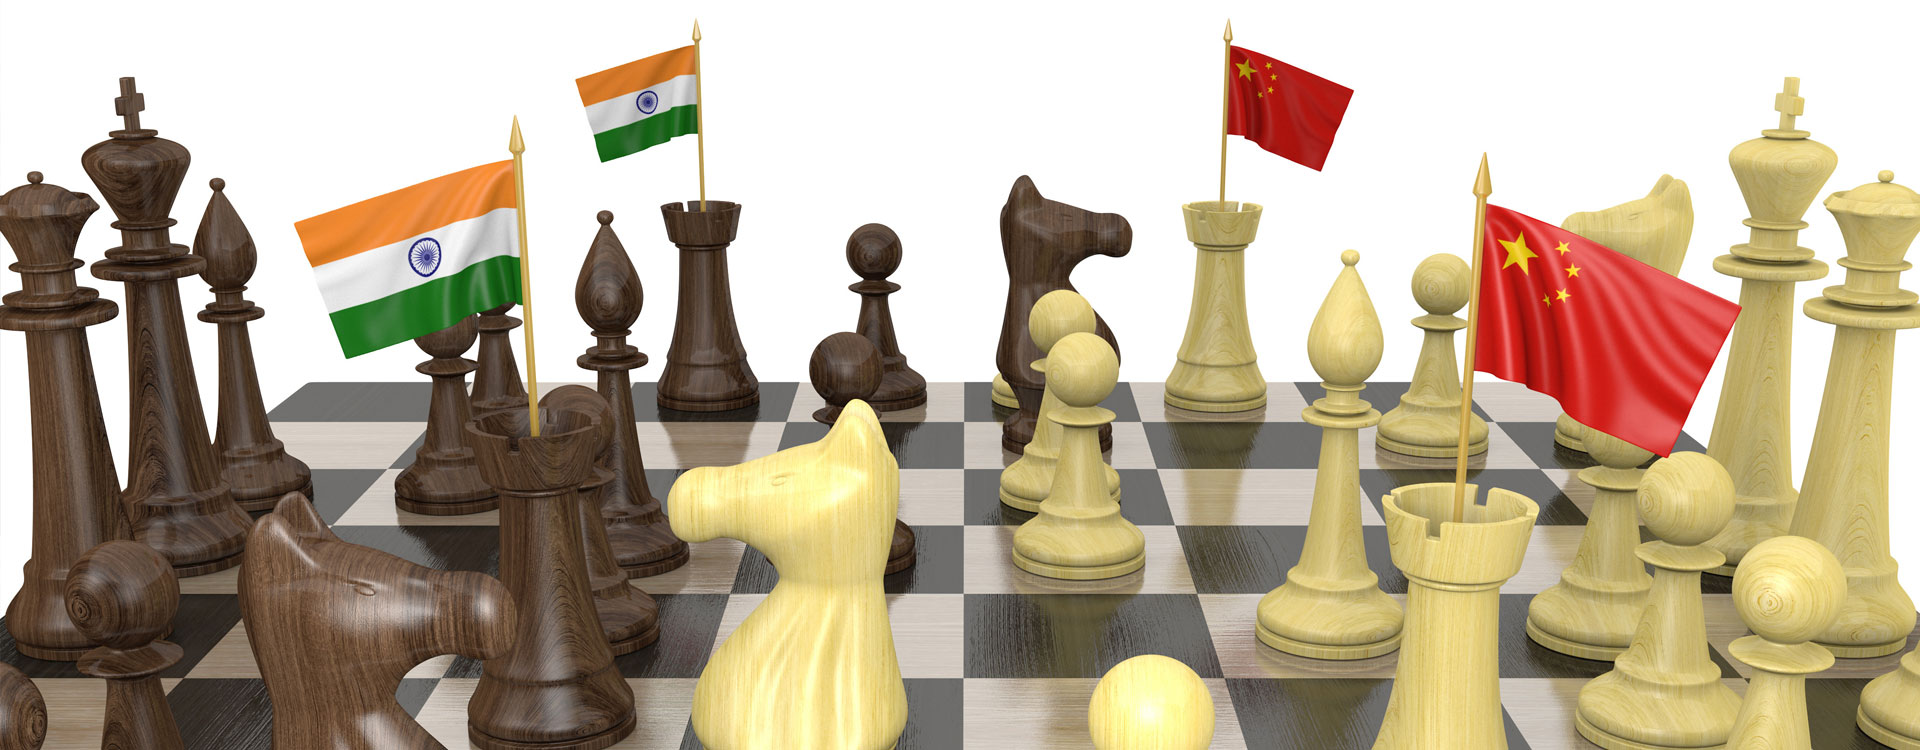 chessboard with flags of China and India